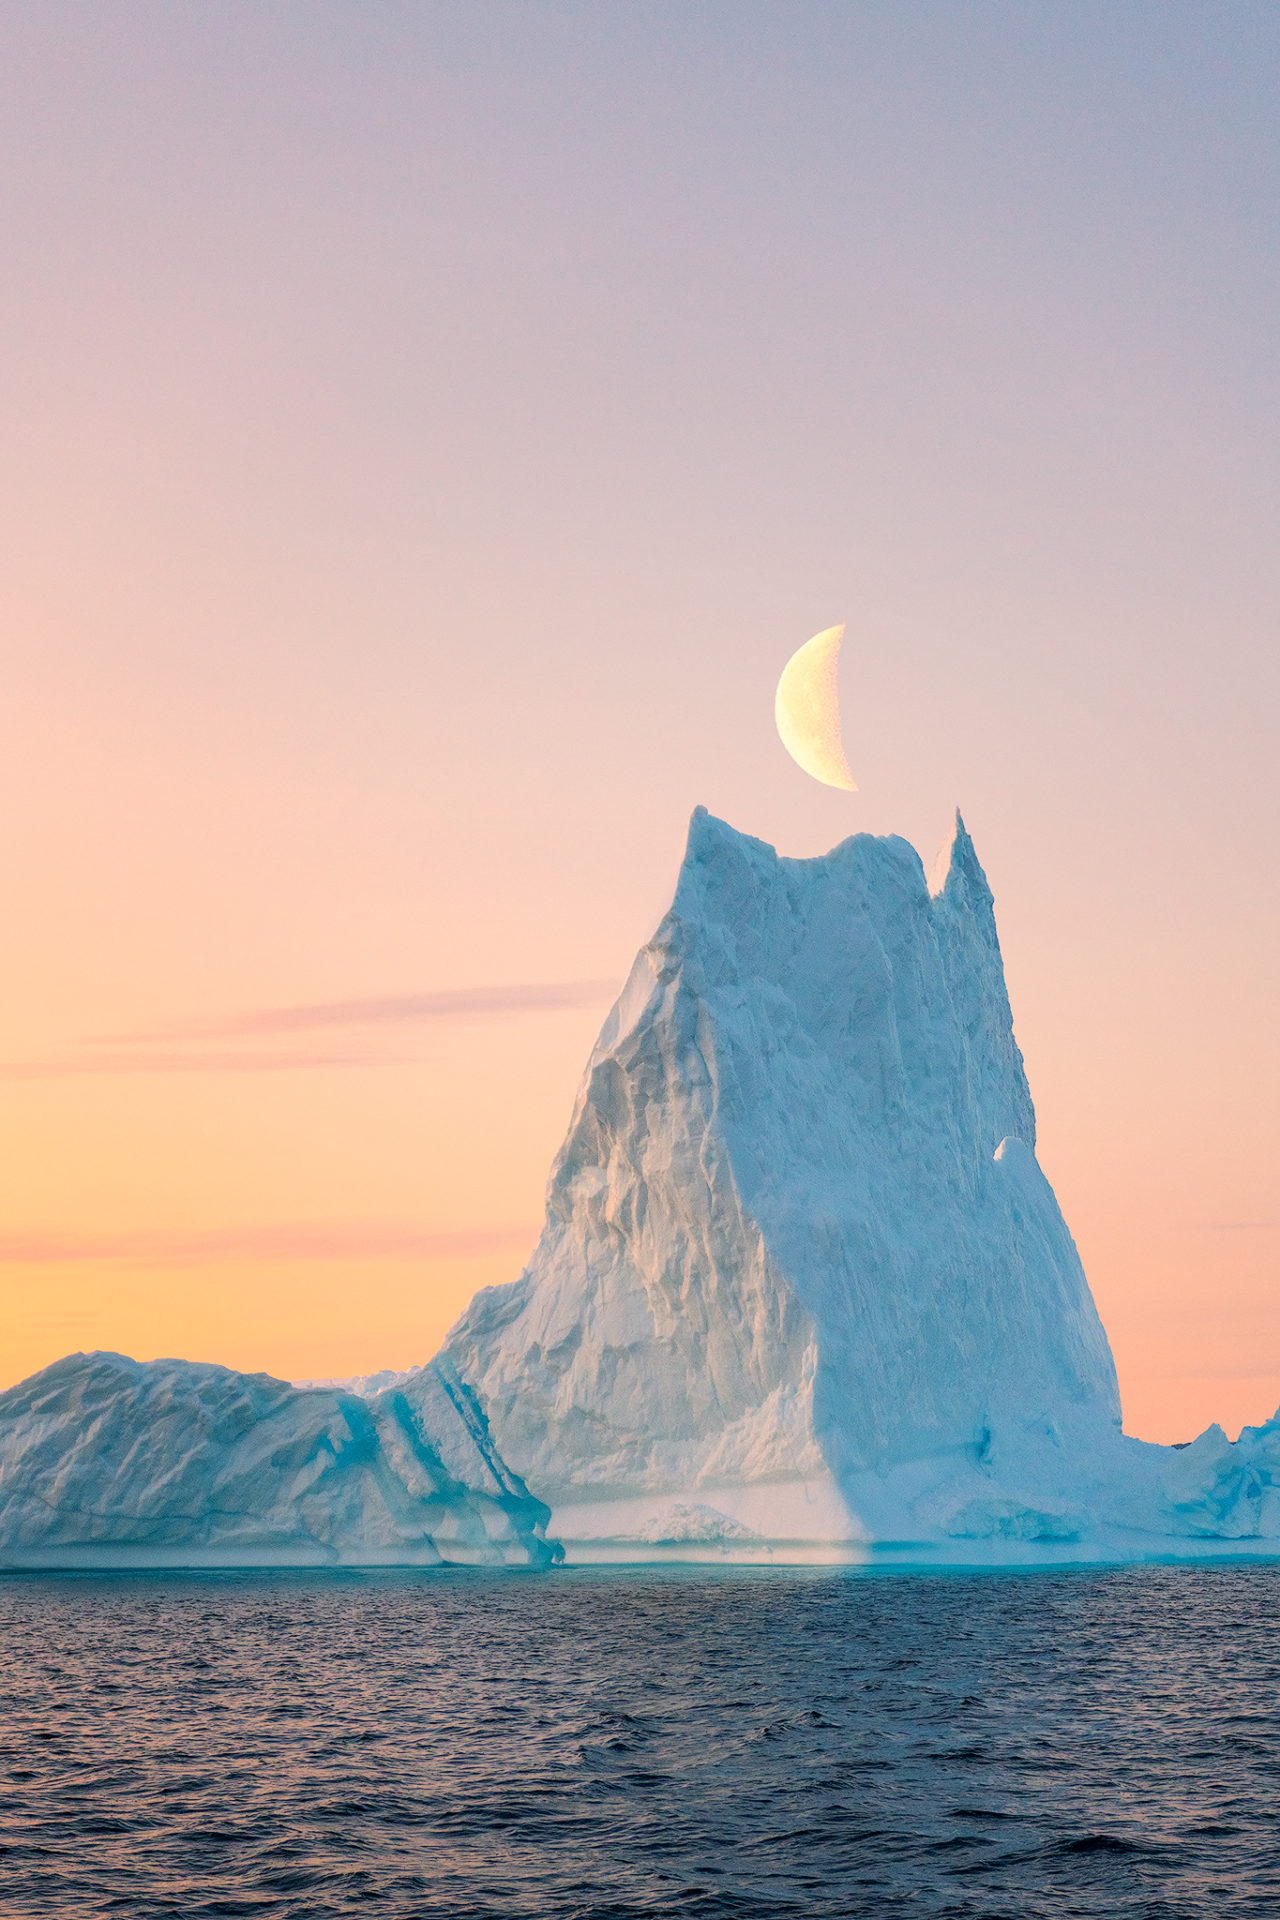 Tower of Sauron, Greenland – Most Beautiful Picture